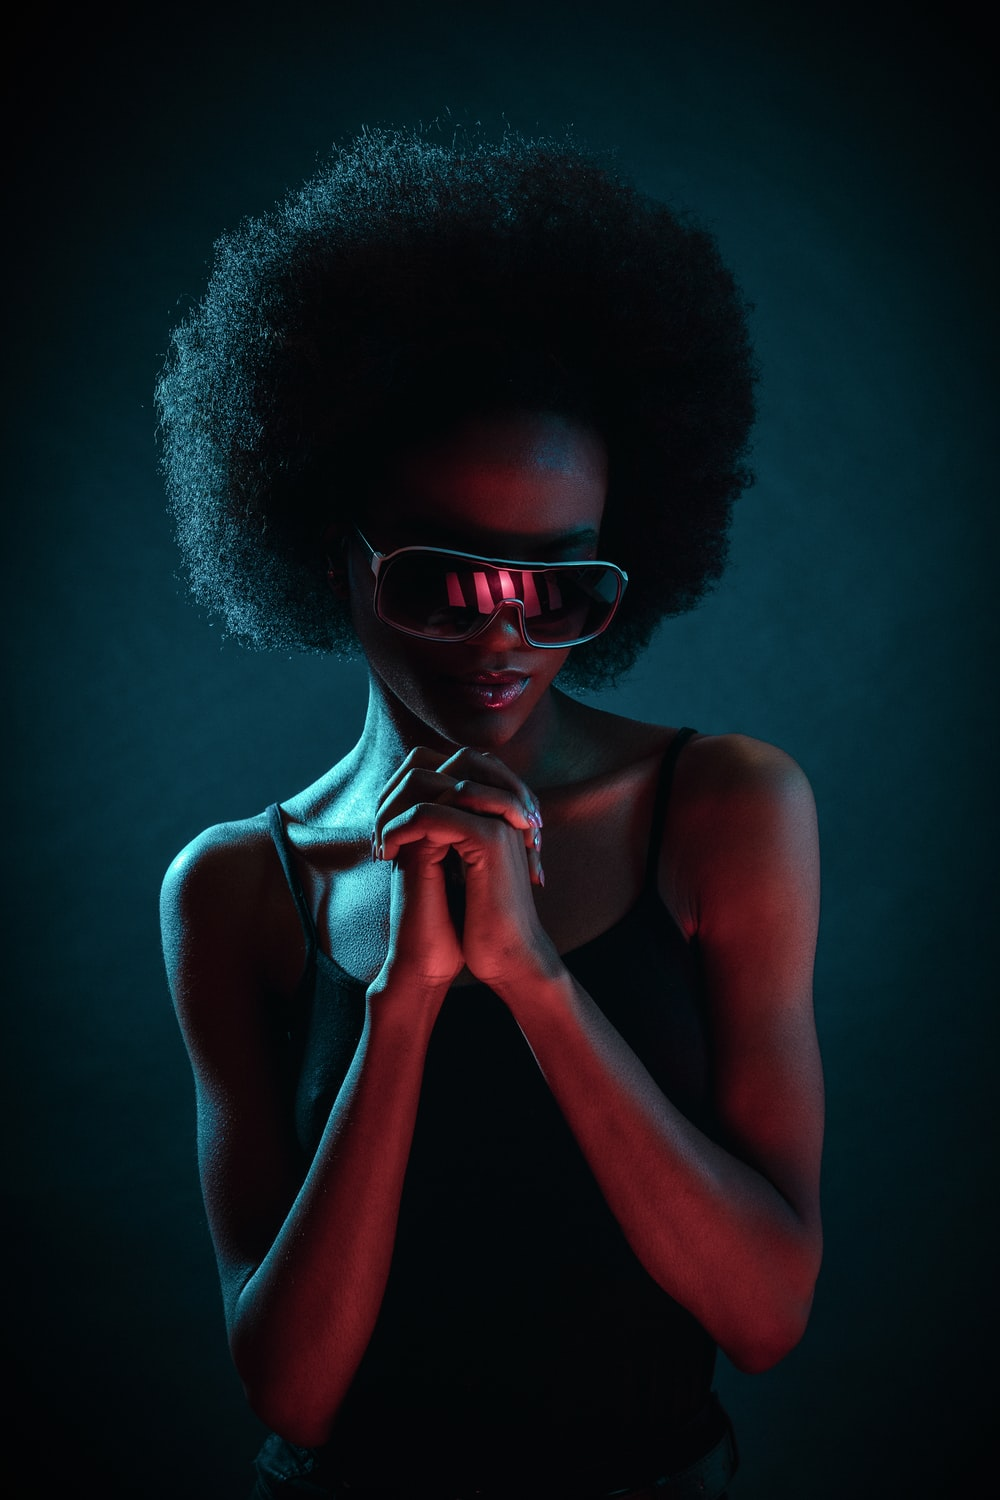 woman wearing black sunglasses and black camisole